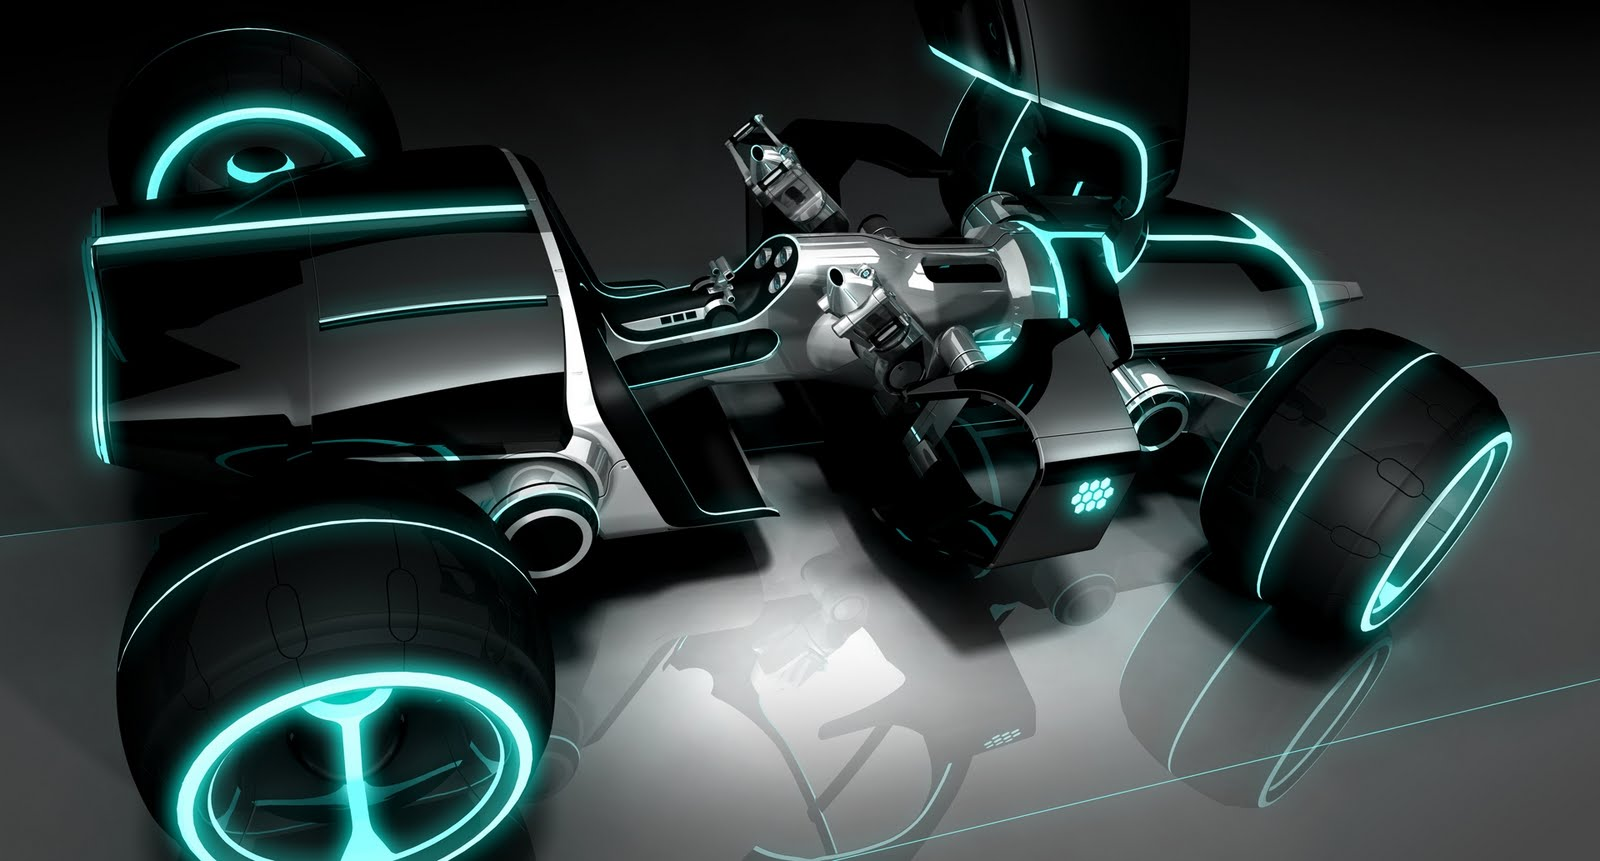 Tron+Motorcycle | Tron Legacy Light Cycle and hot rod desktop